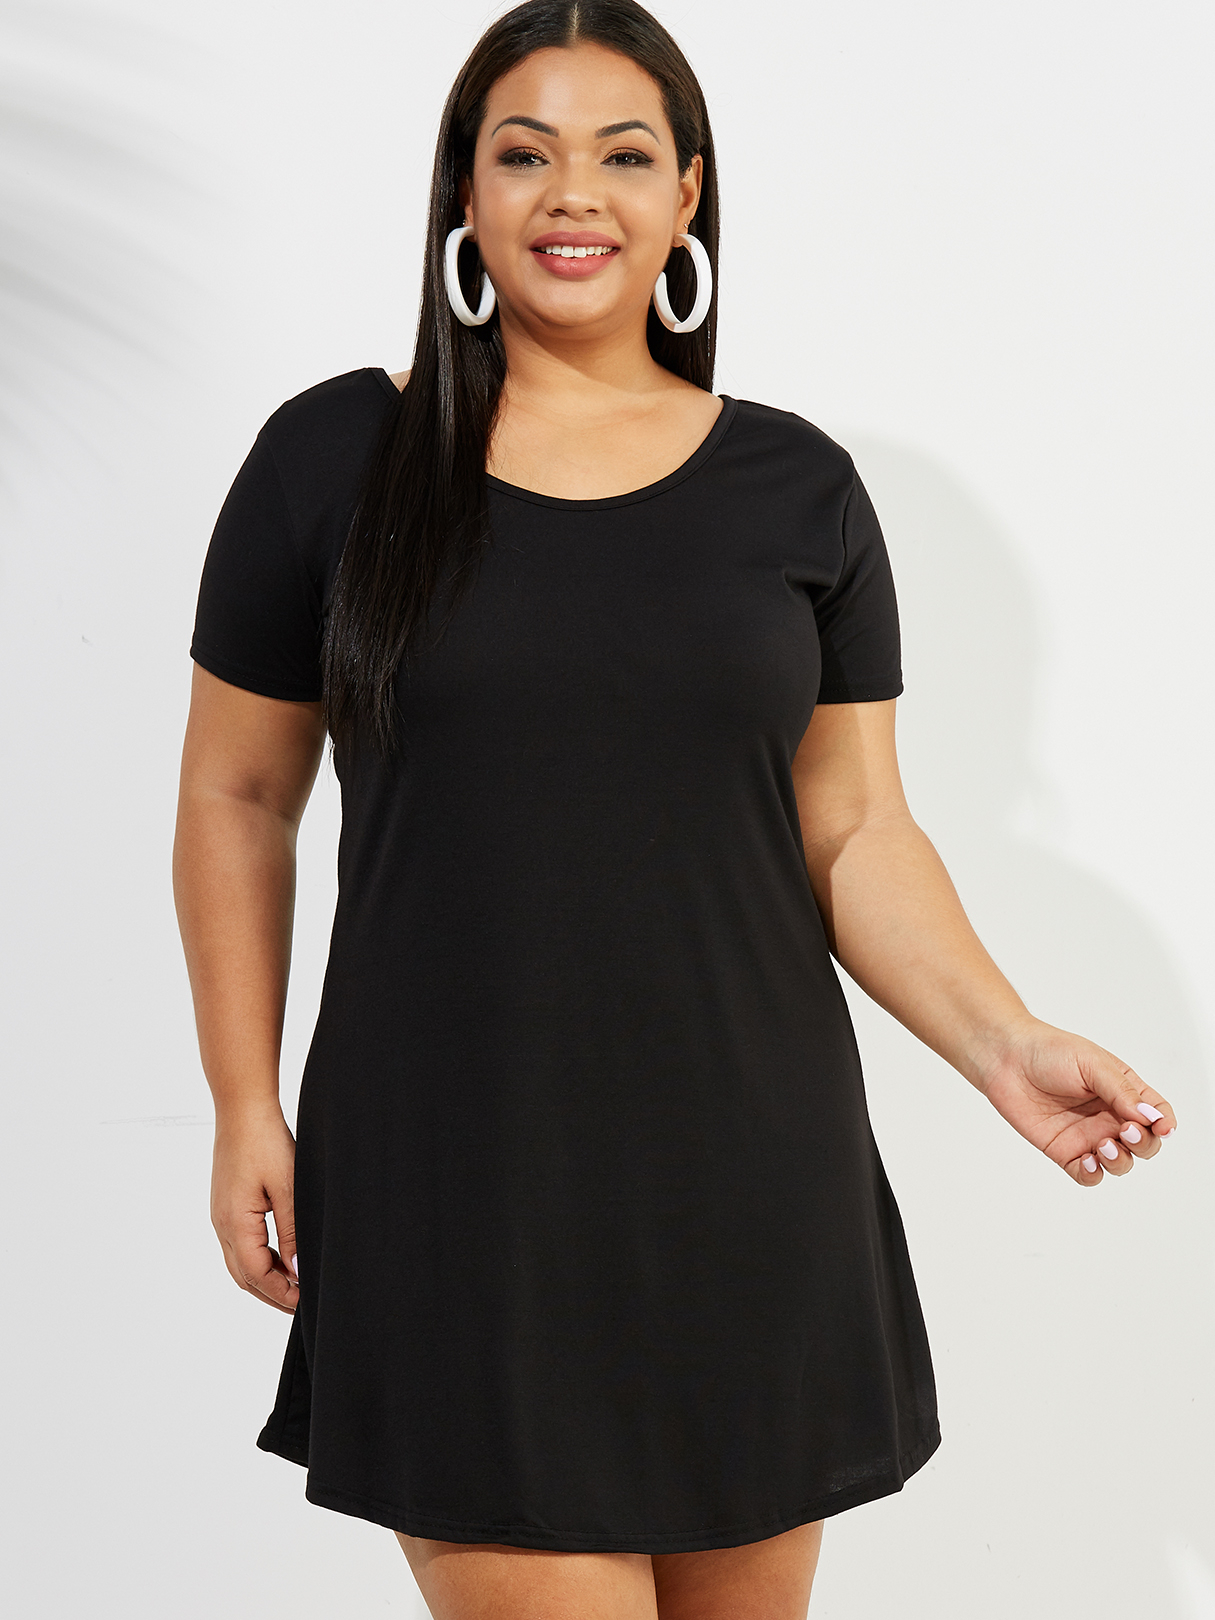 Plus Size Black Round Neck Short Sleeves Dress